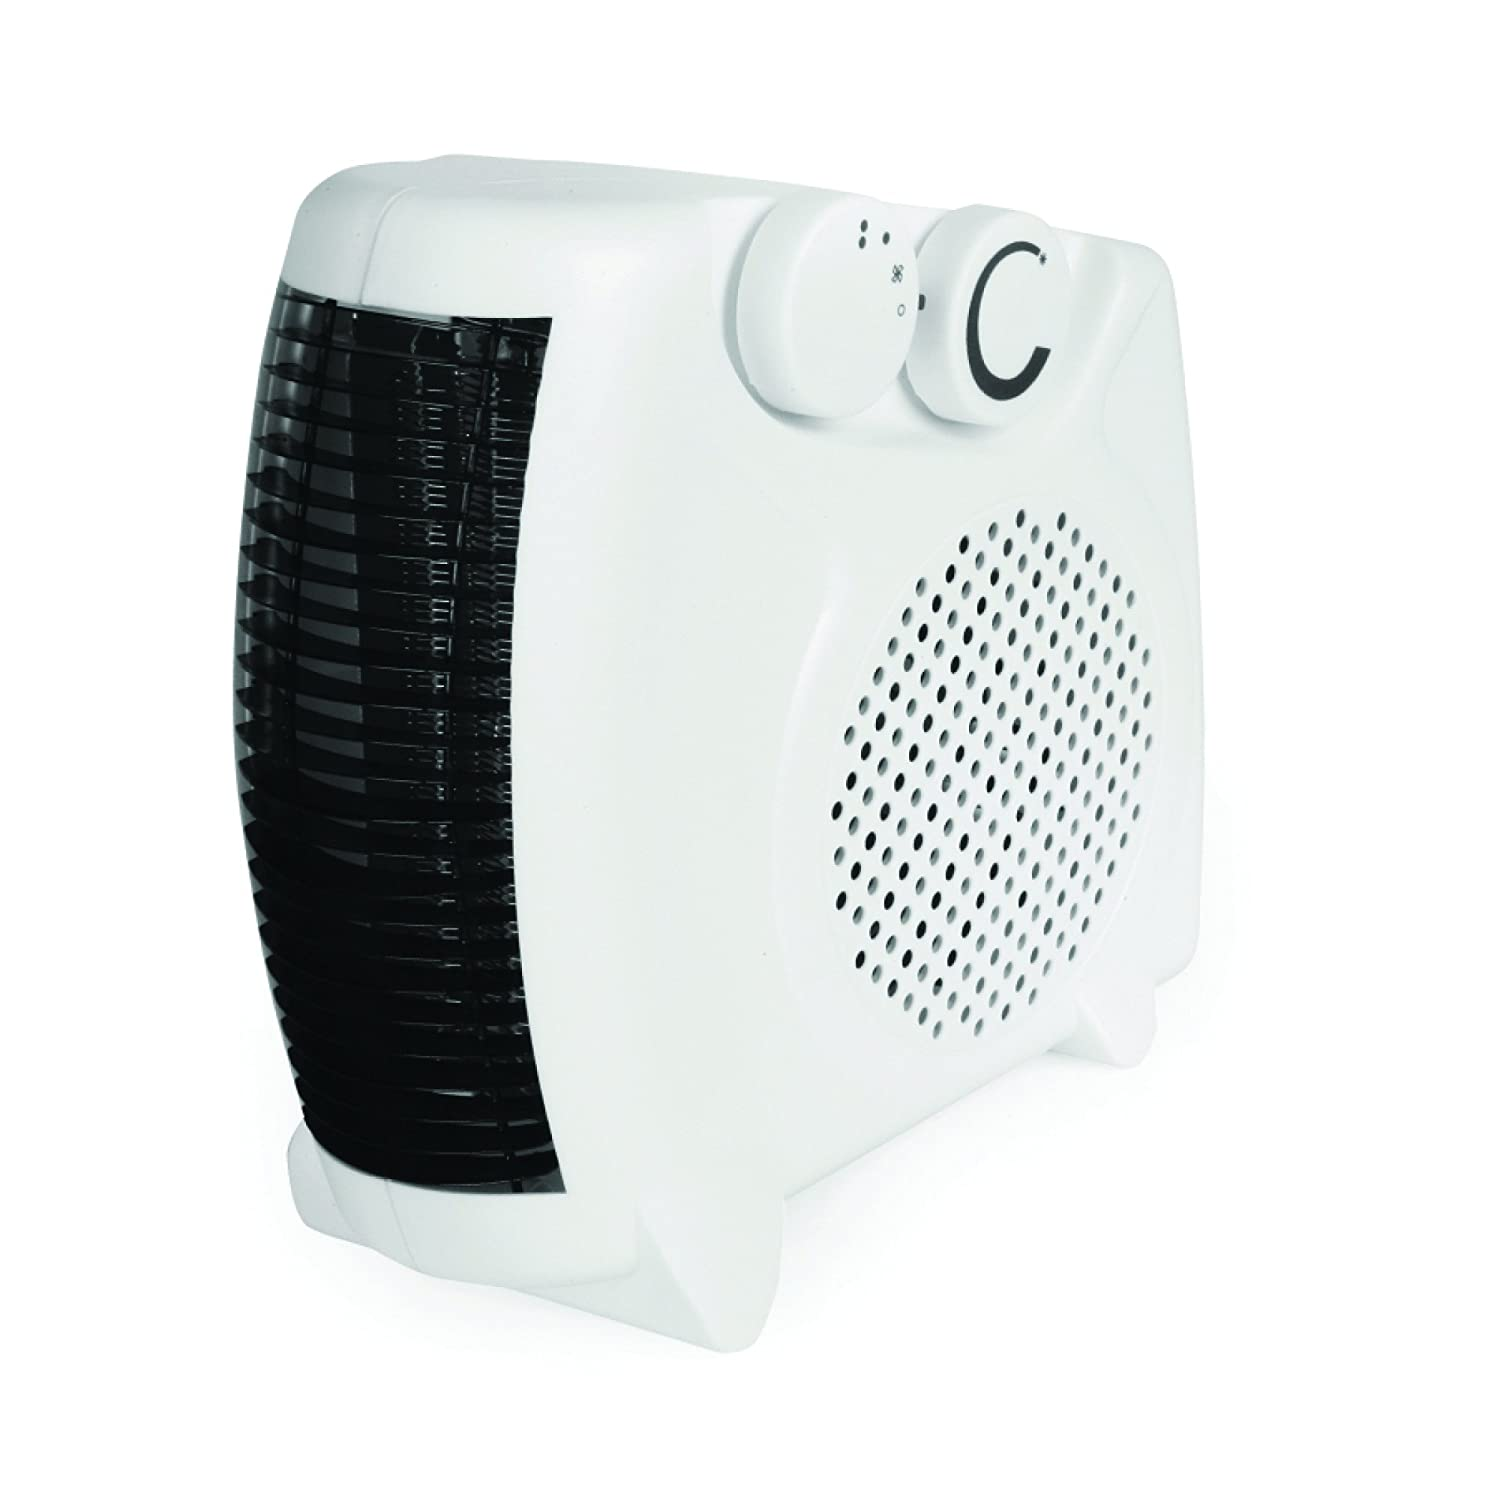 Rhino H02073 2 kW Fan Heater - White